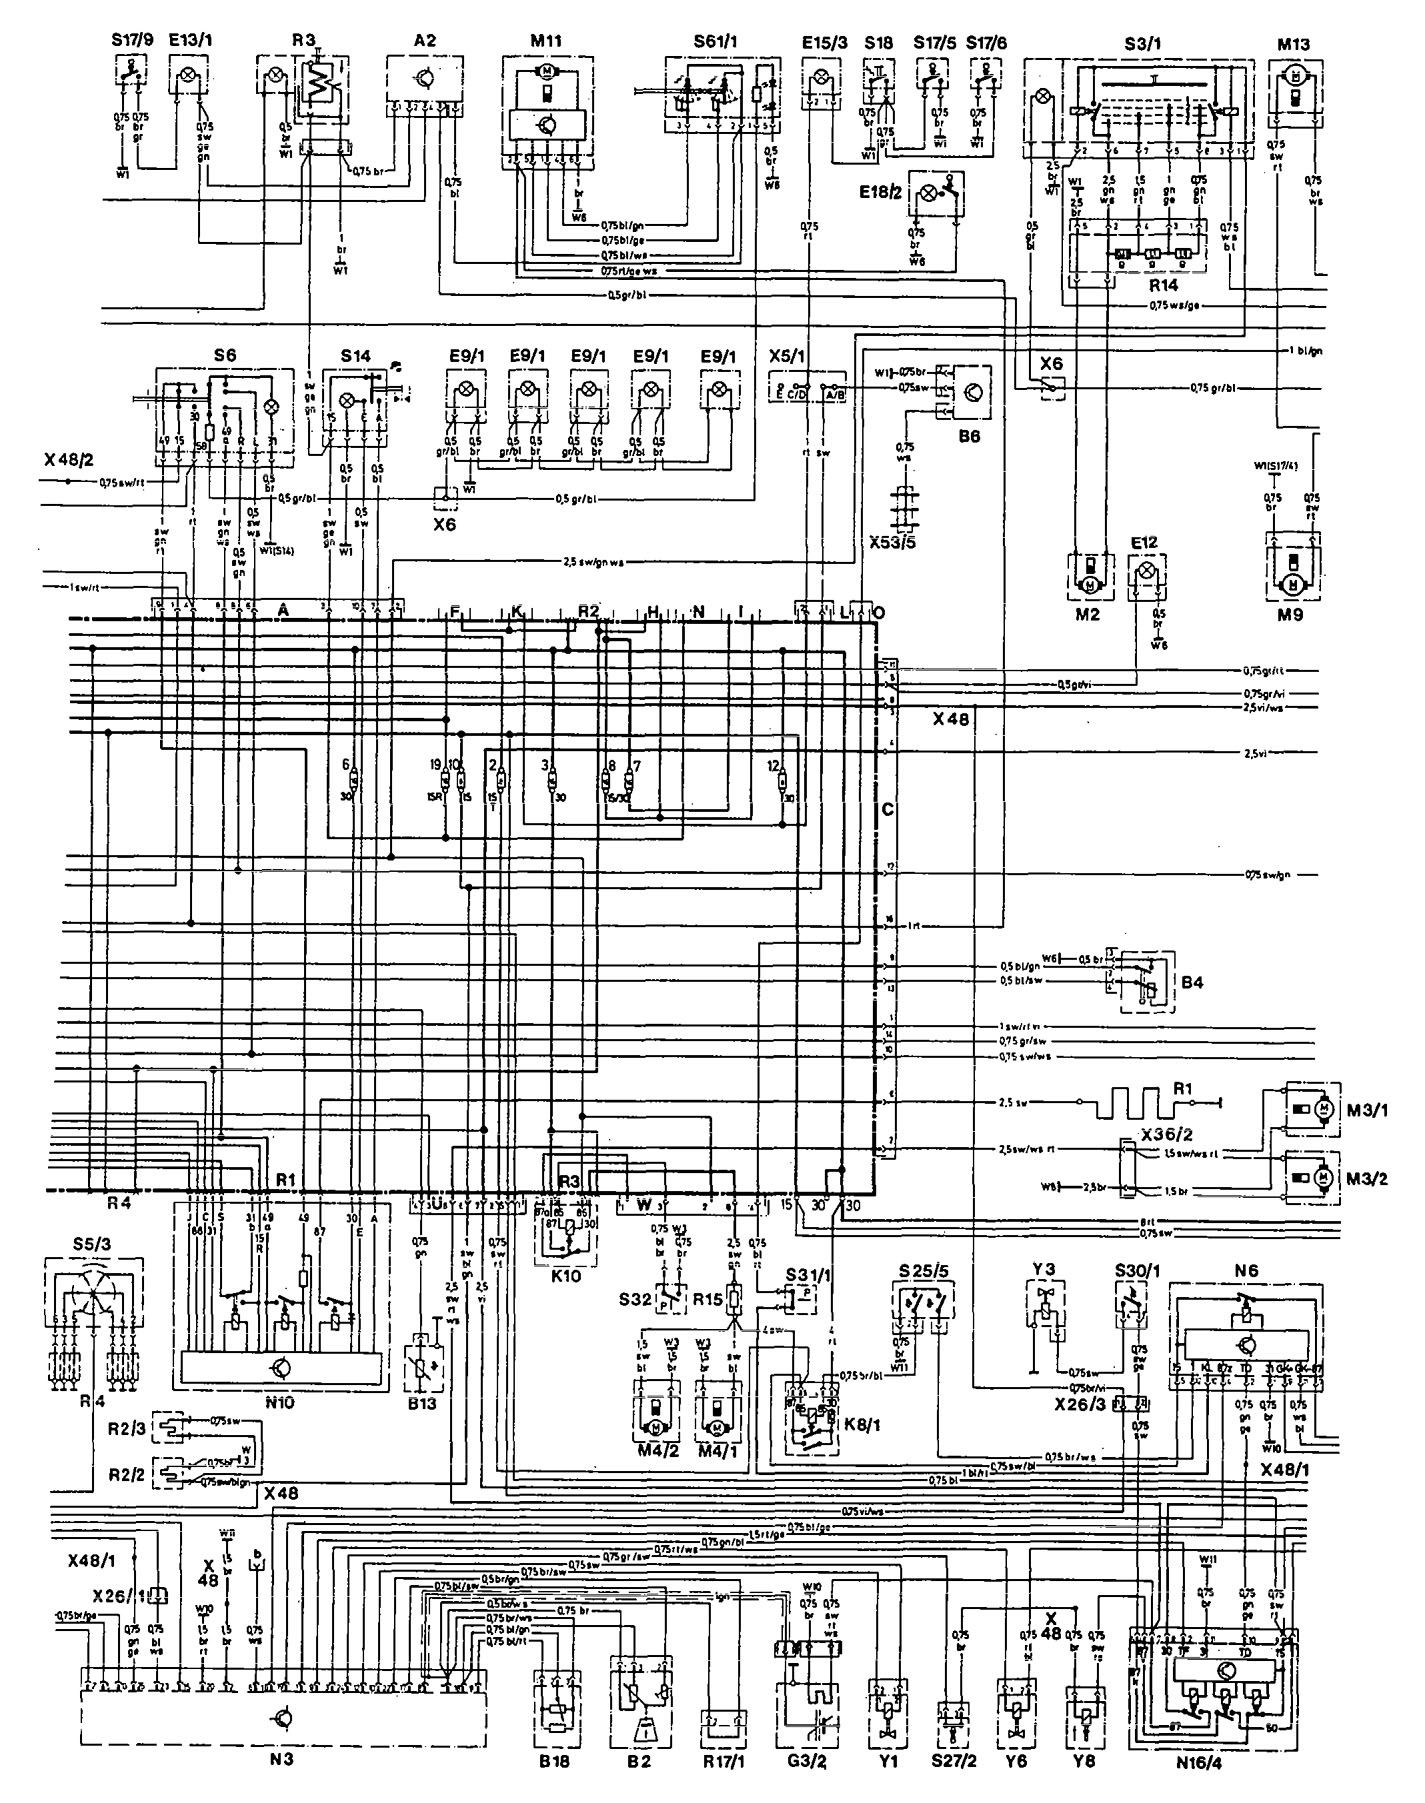 Mercedes 190e 1993 Wiring Diagrams Wiper Washer Carknowledge Diagram